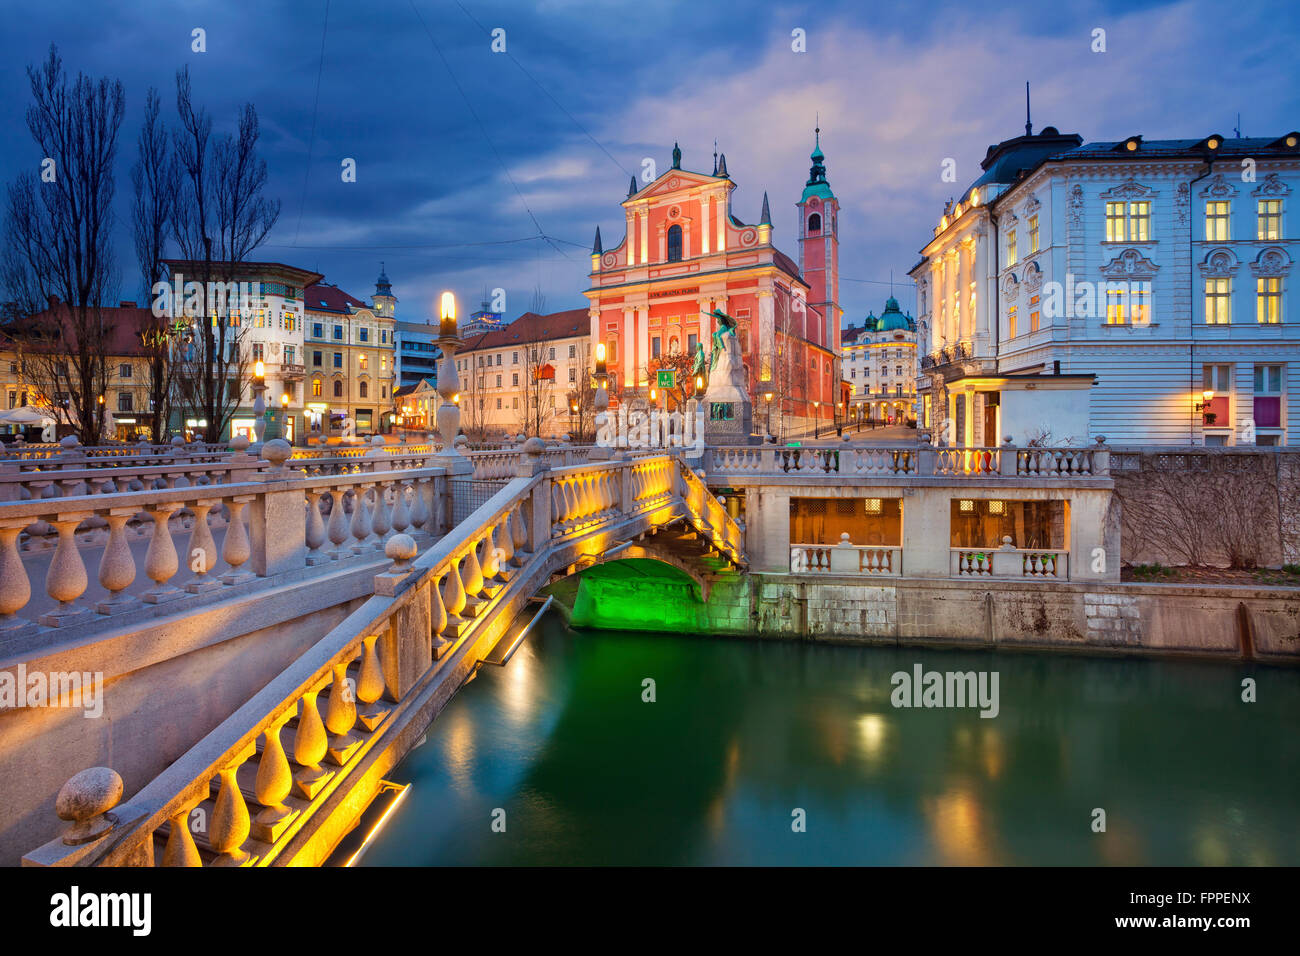 Ljubljana. Image of Ljubljana, Slovenia during twilight blue hour. - Stock Image